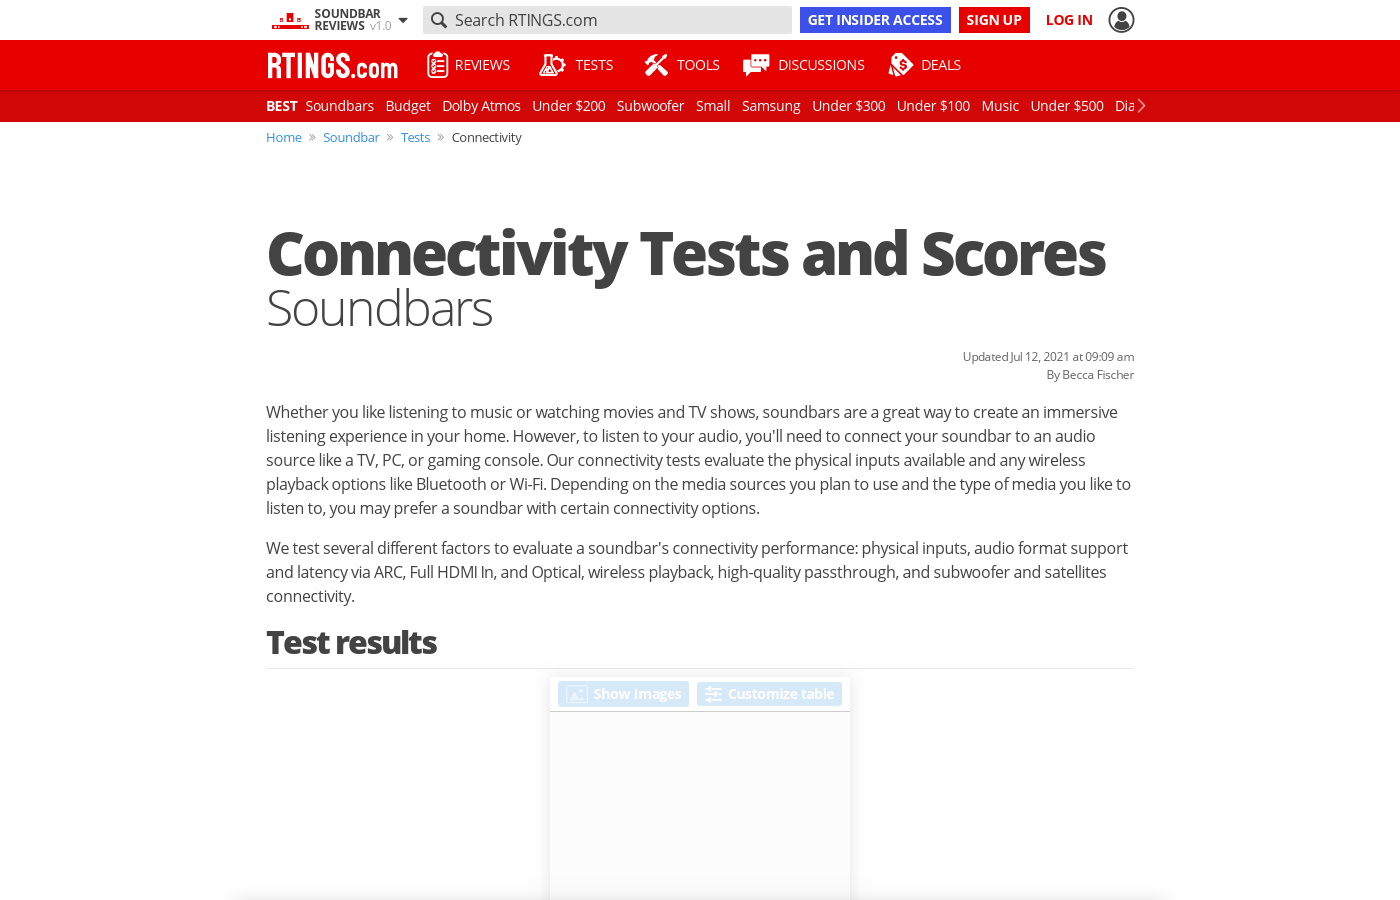 Connectivity Tests and Scores: Soundbars